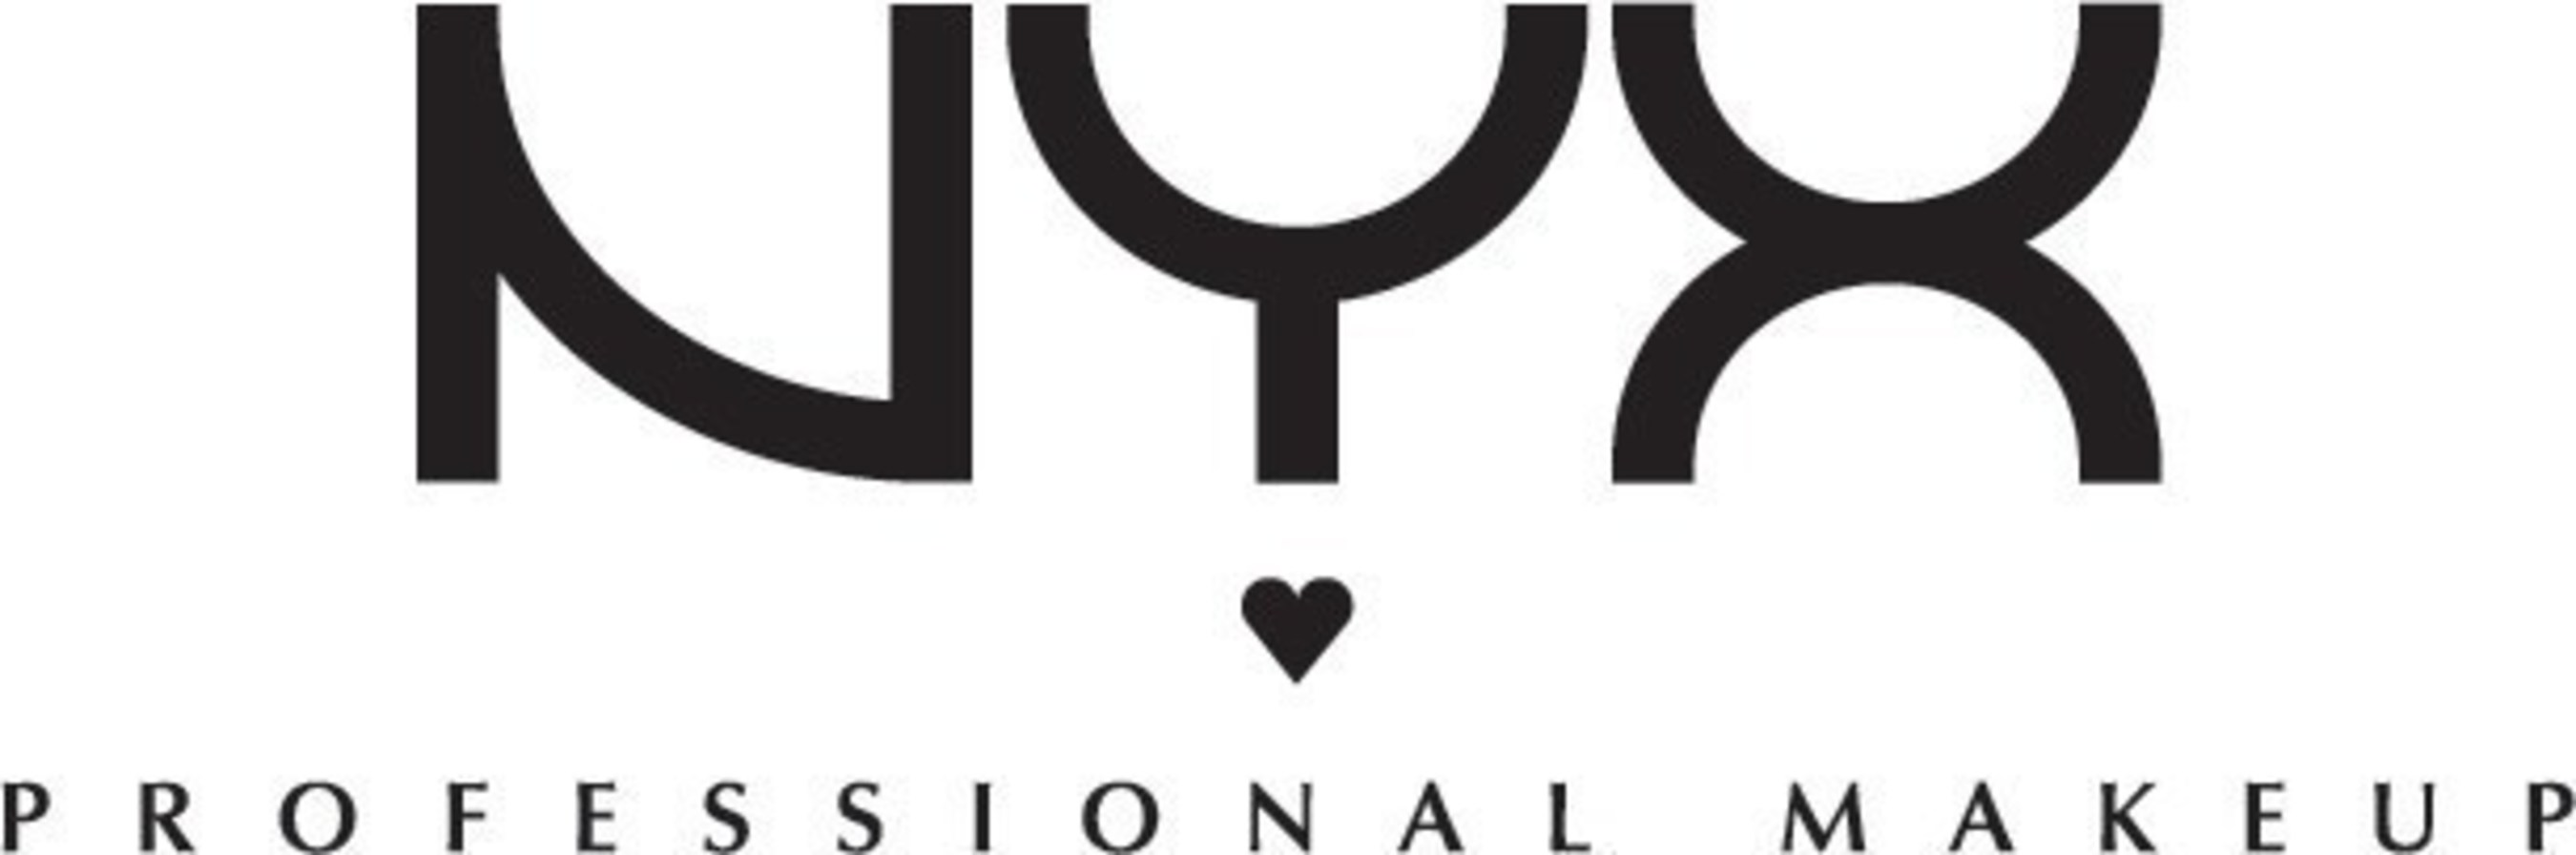 NYX Cosmetics Set to Open First Digitally Enabled Retail Stores Aimed at a New Generation of Makeup Lovers